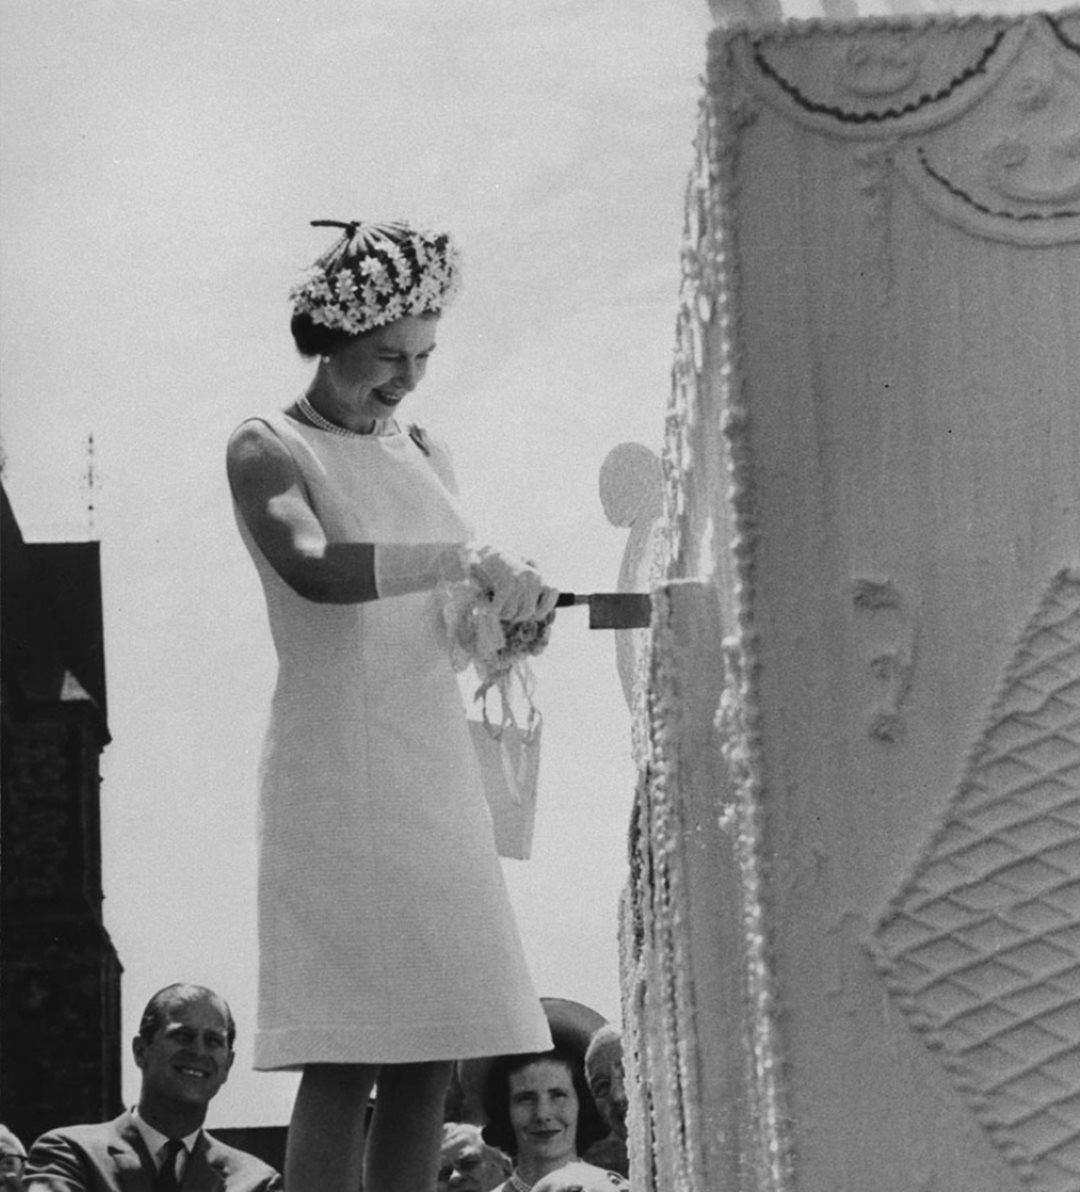 Queen Elizabeth II cuts a giant four-storey birthday cake during centennial celebrations on Parliament Hill on July 1, 1967. (Library and Archives Canada)